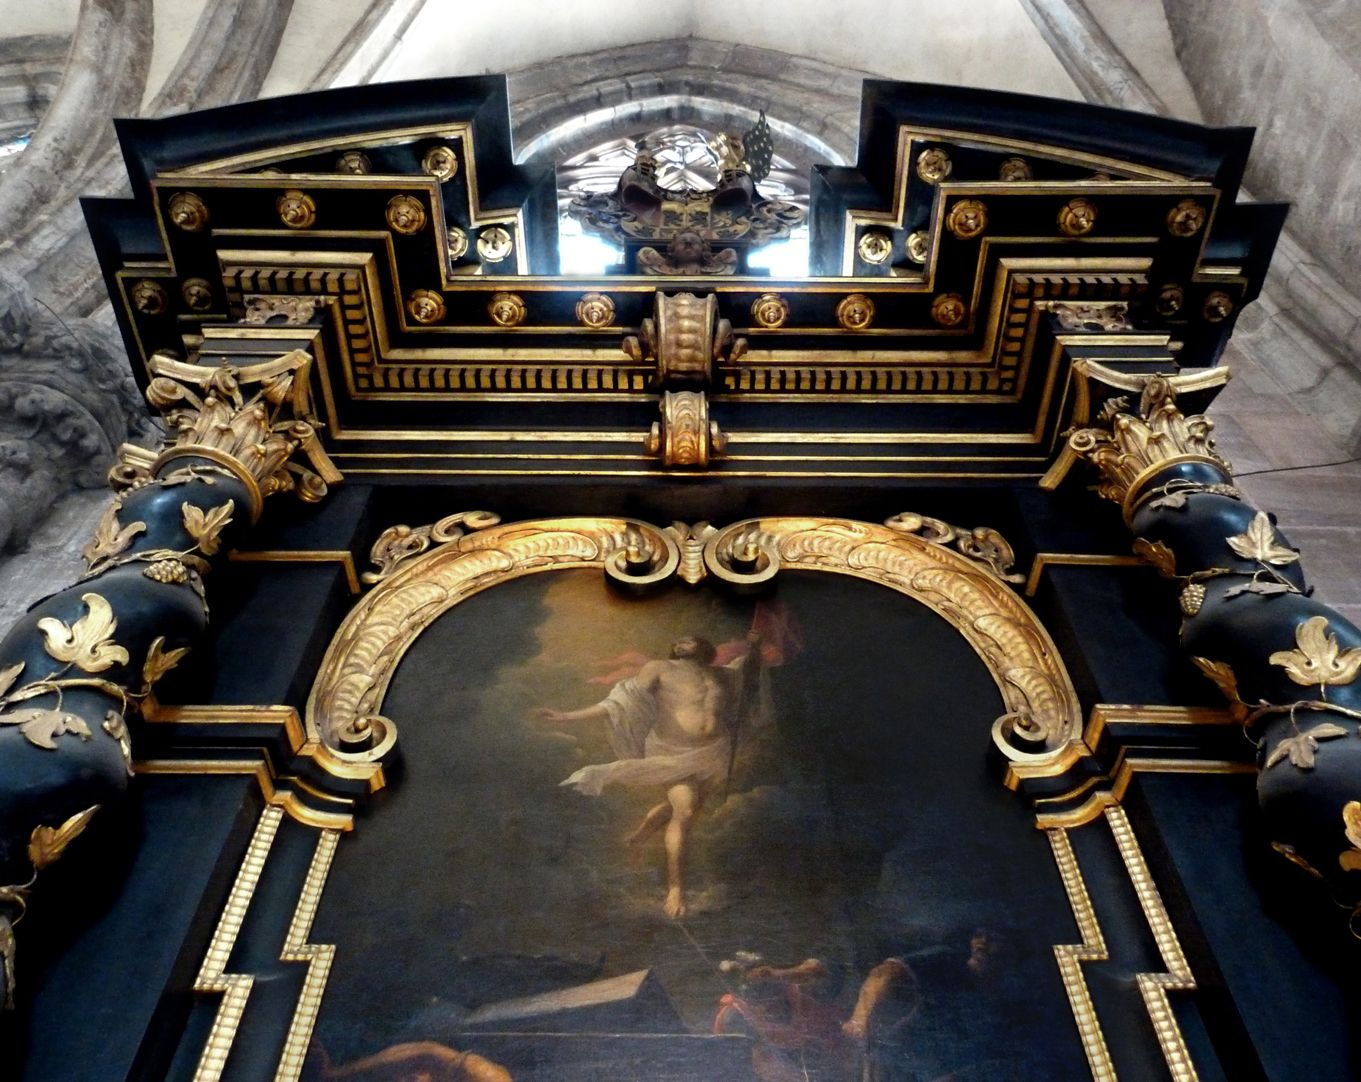 Muffel Altar View from below with the gable opened up